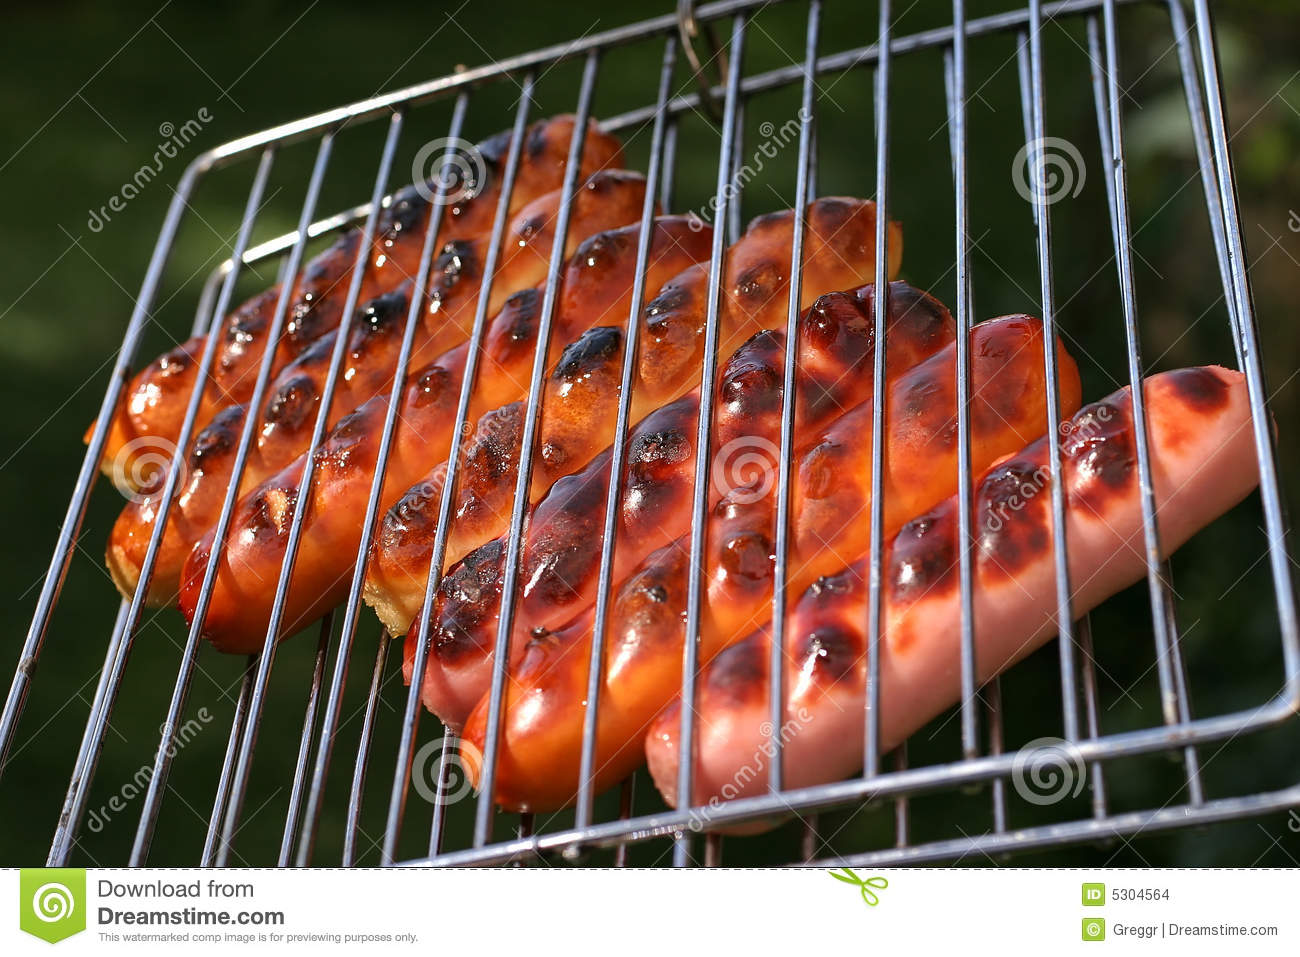 Roast Chicken And Beef Sausages On Grill Stock Images - Image: 5304564